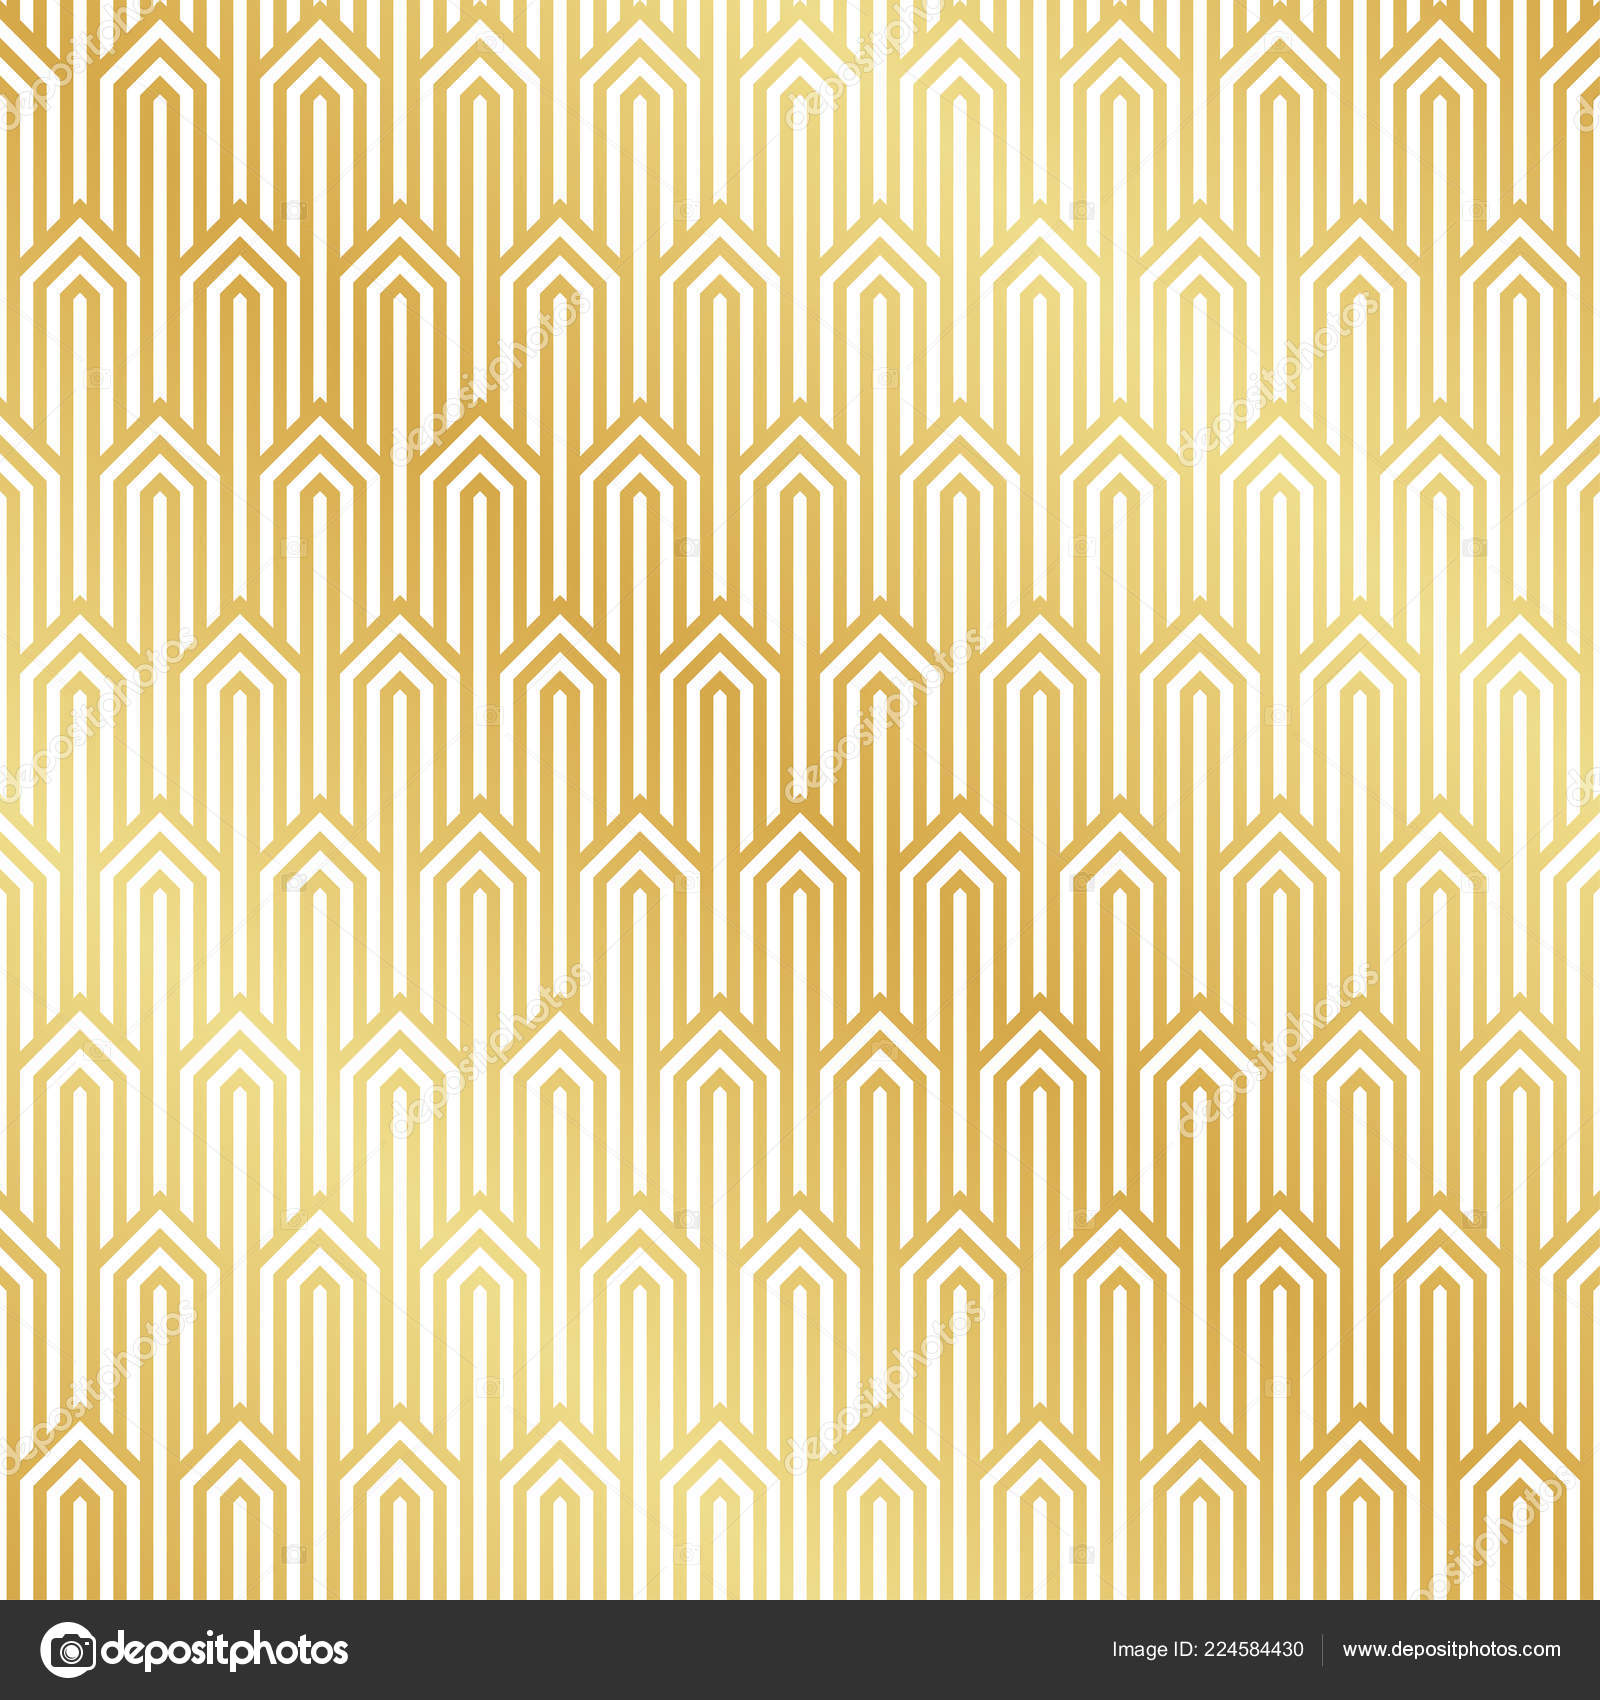 Seamless Gold Art Deco Pattern Background Art Deco Background